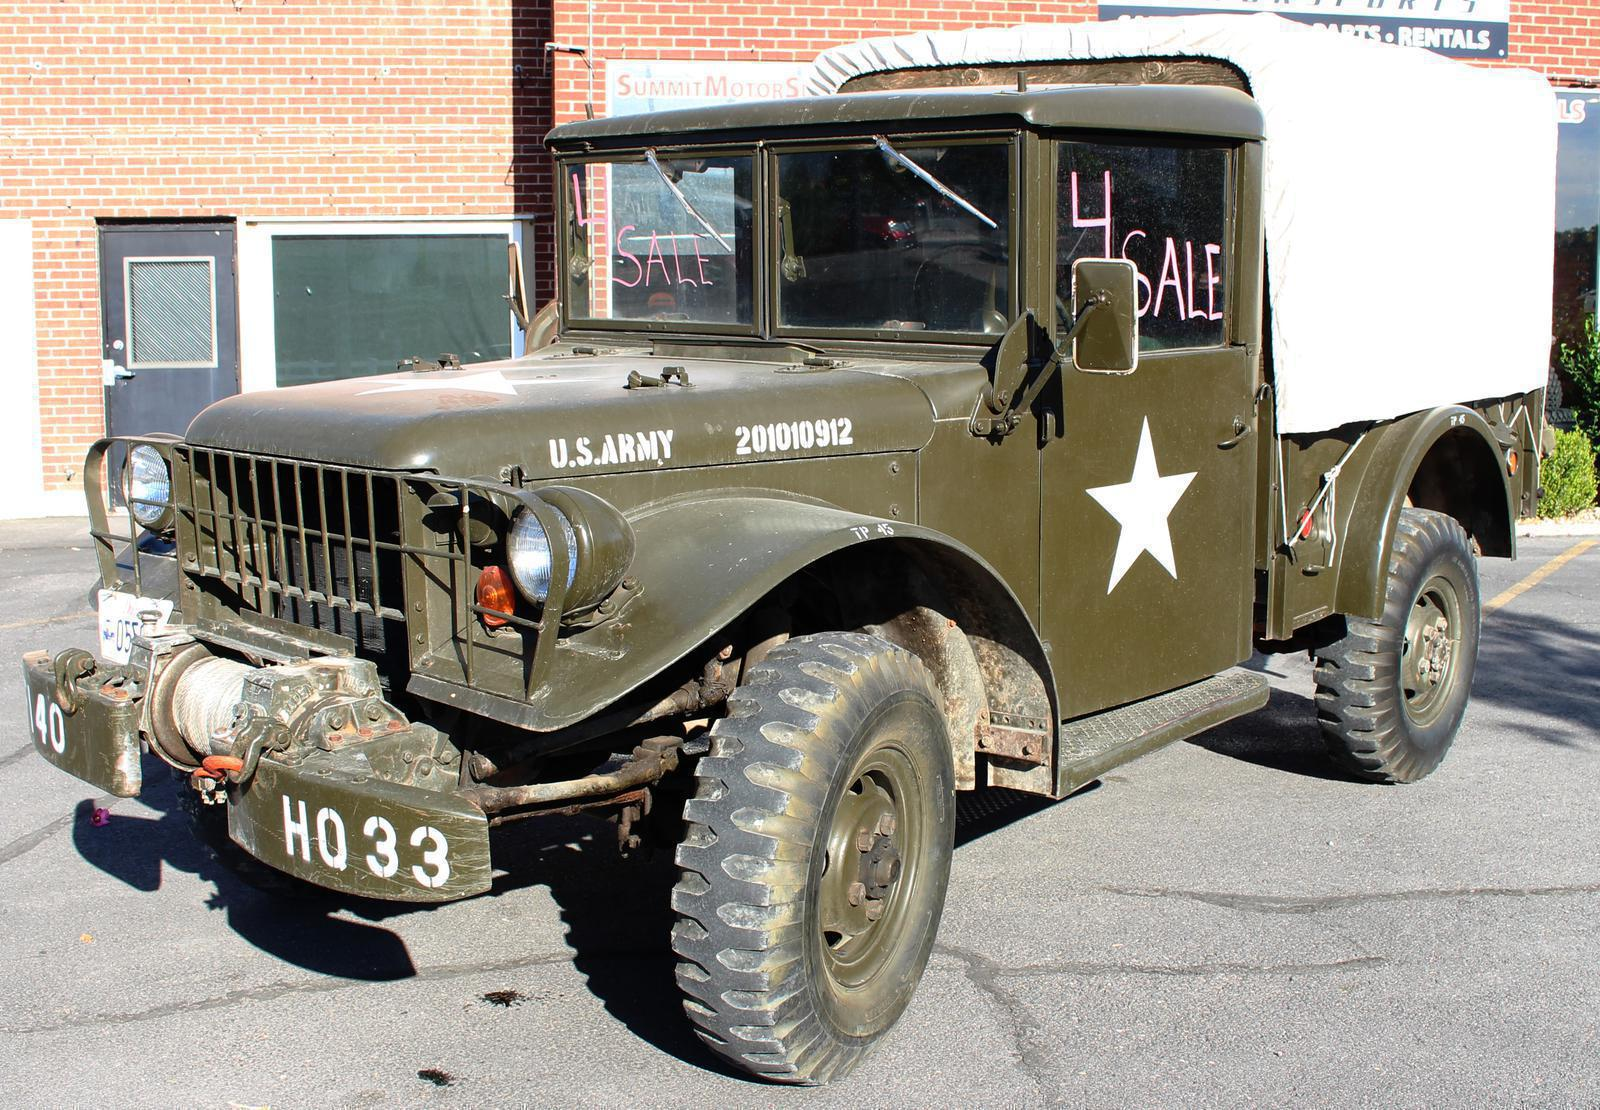 1953 Dodge M37 for sale in Spanish Fork, UT | Summit Motorsports (801)  405-7433